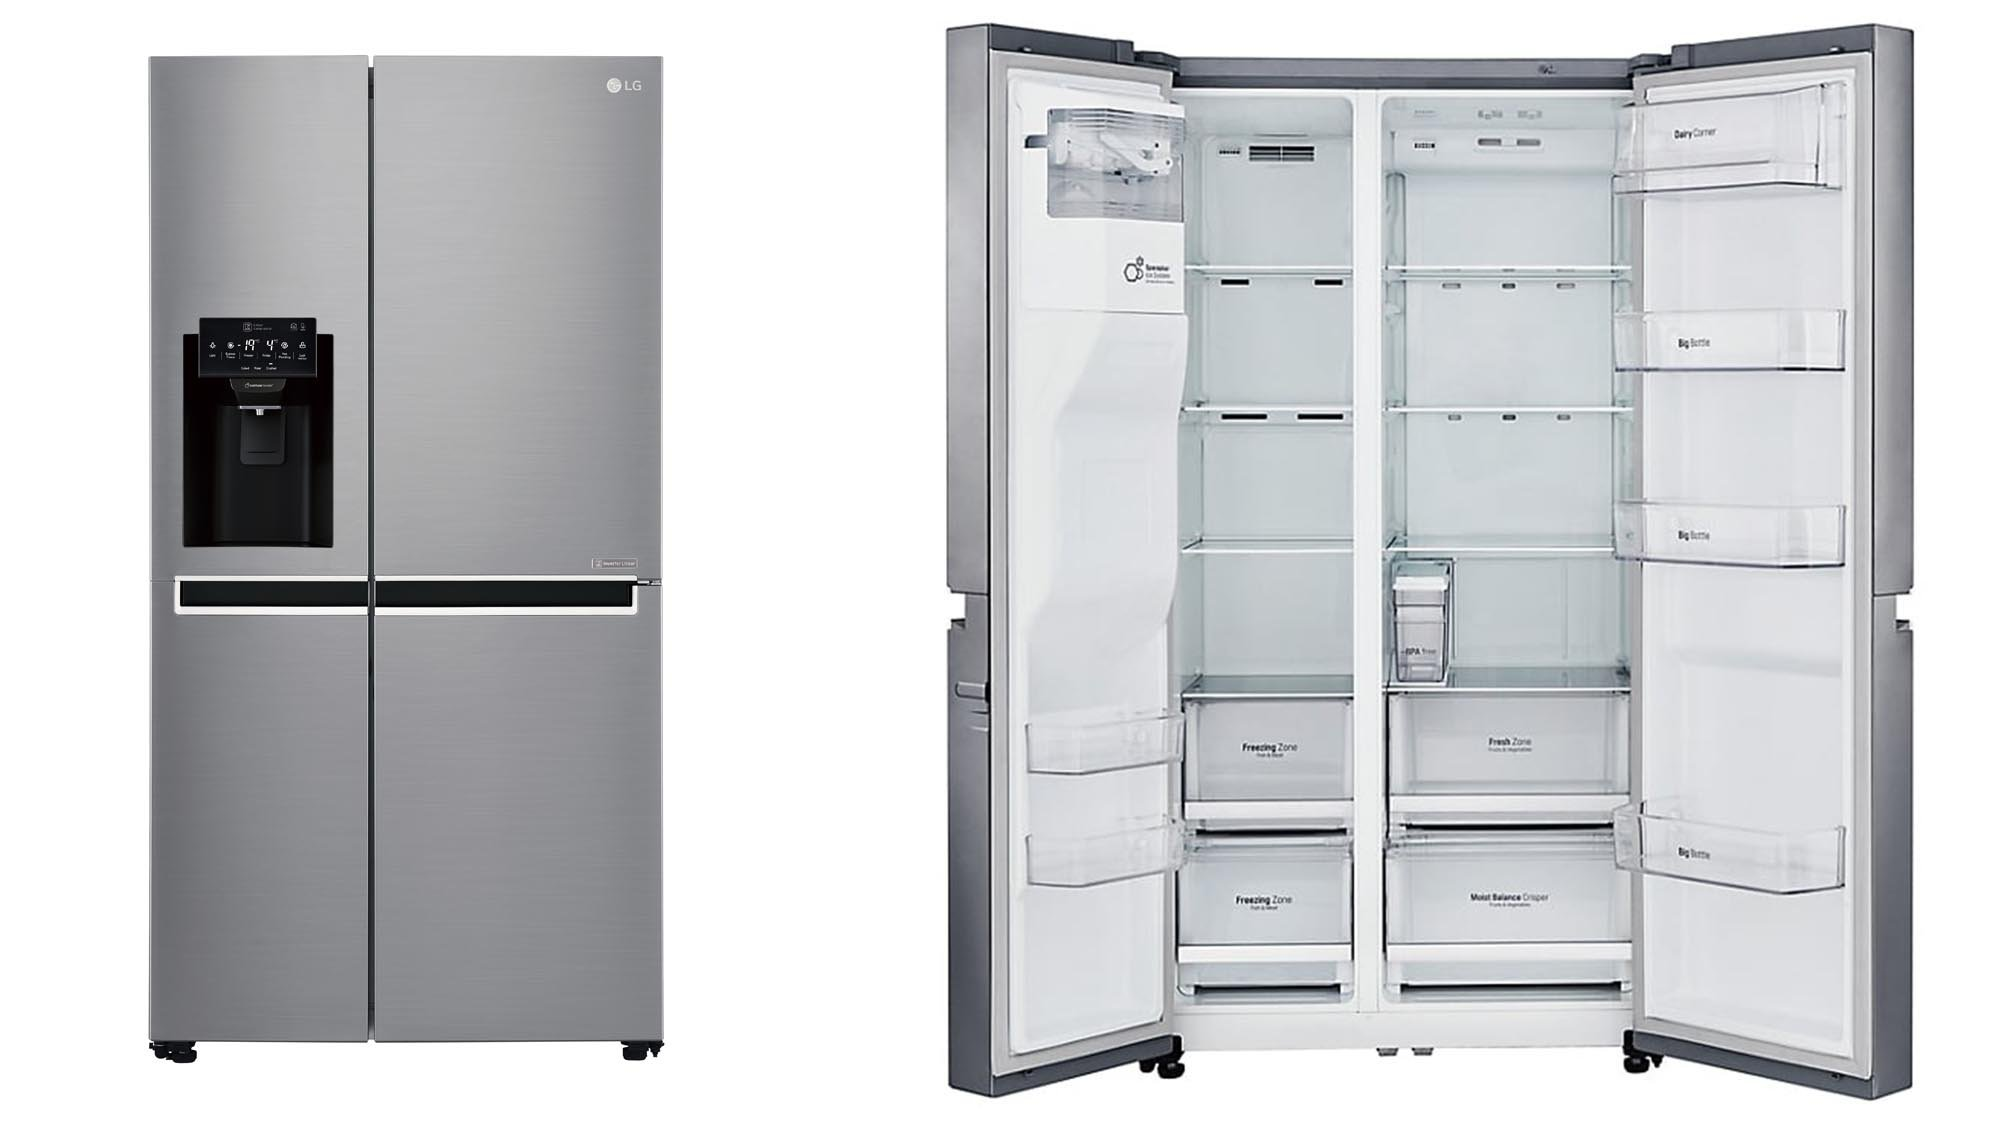 Best fridge freezer 2018: The best fridge freezers to buy from £249 ...